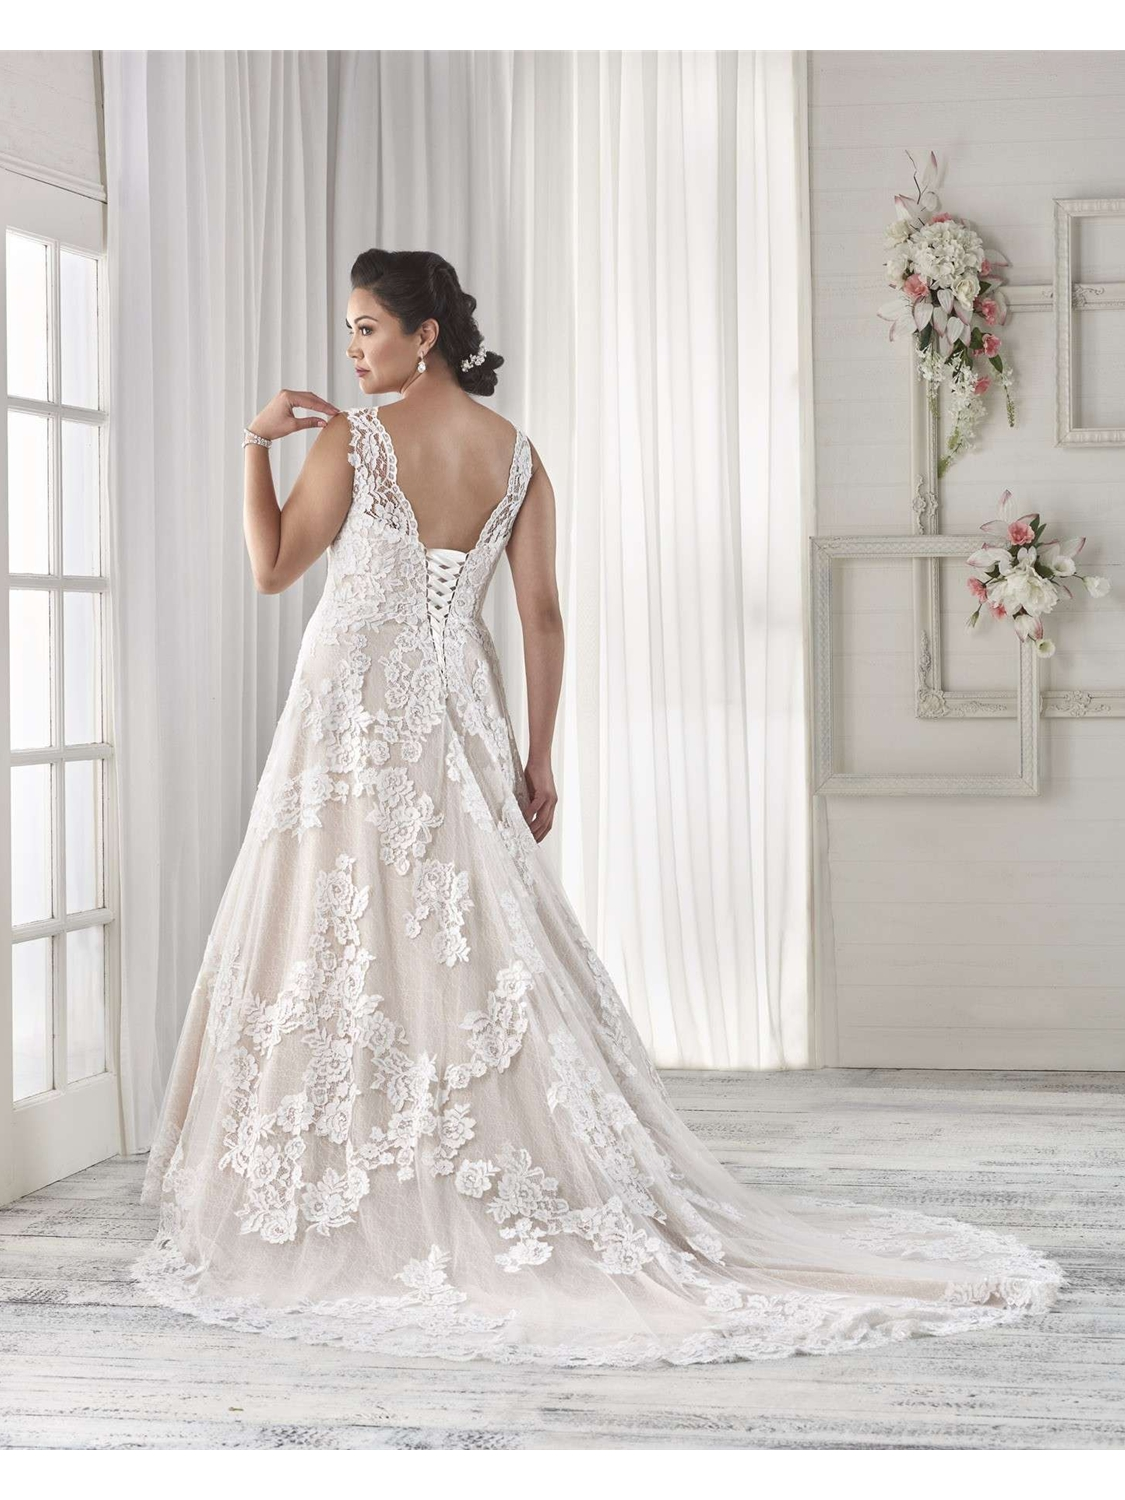 Unforgettable By Bonny Wedding Dress Style 1603 House Of Brides